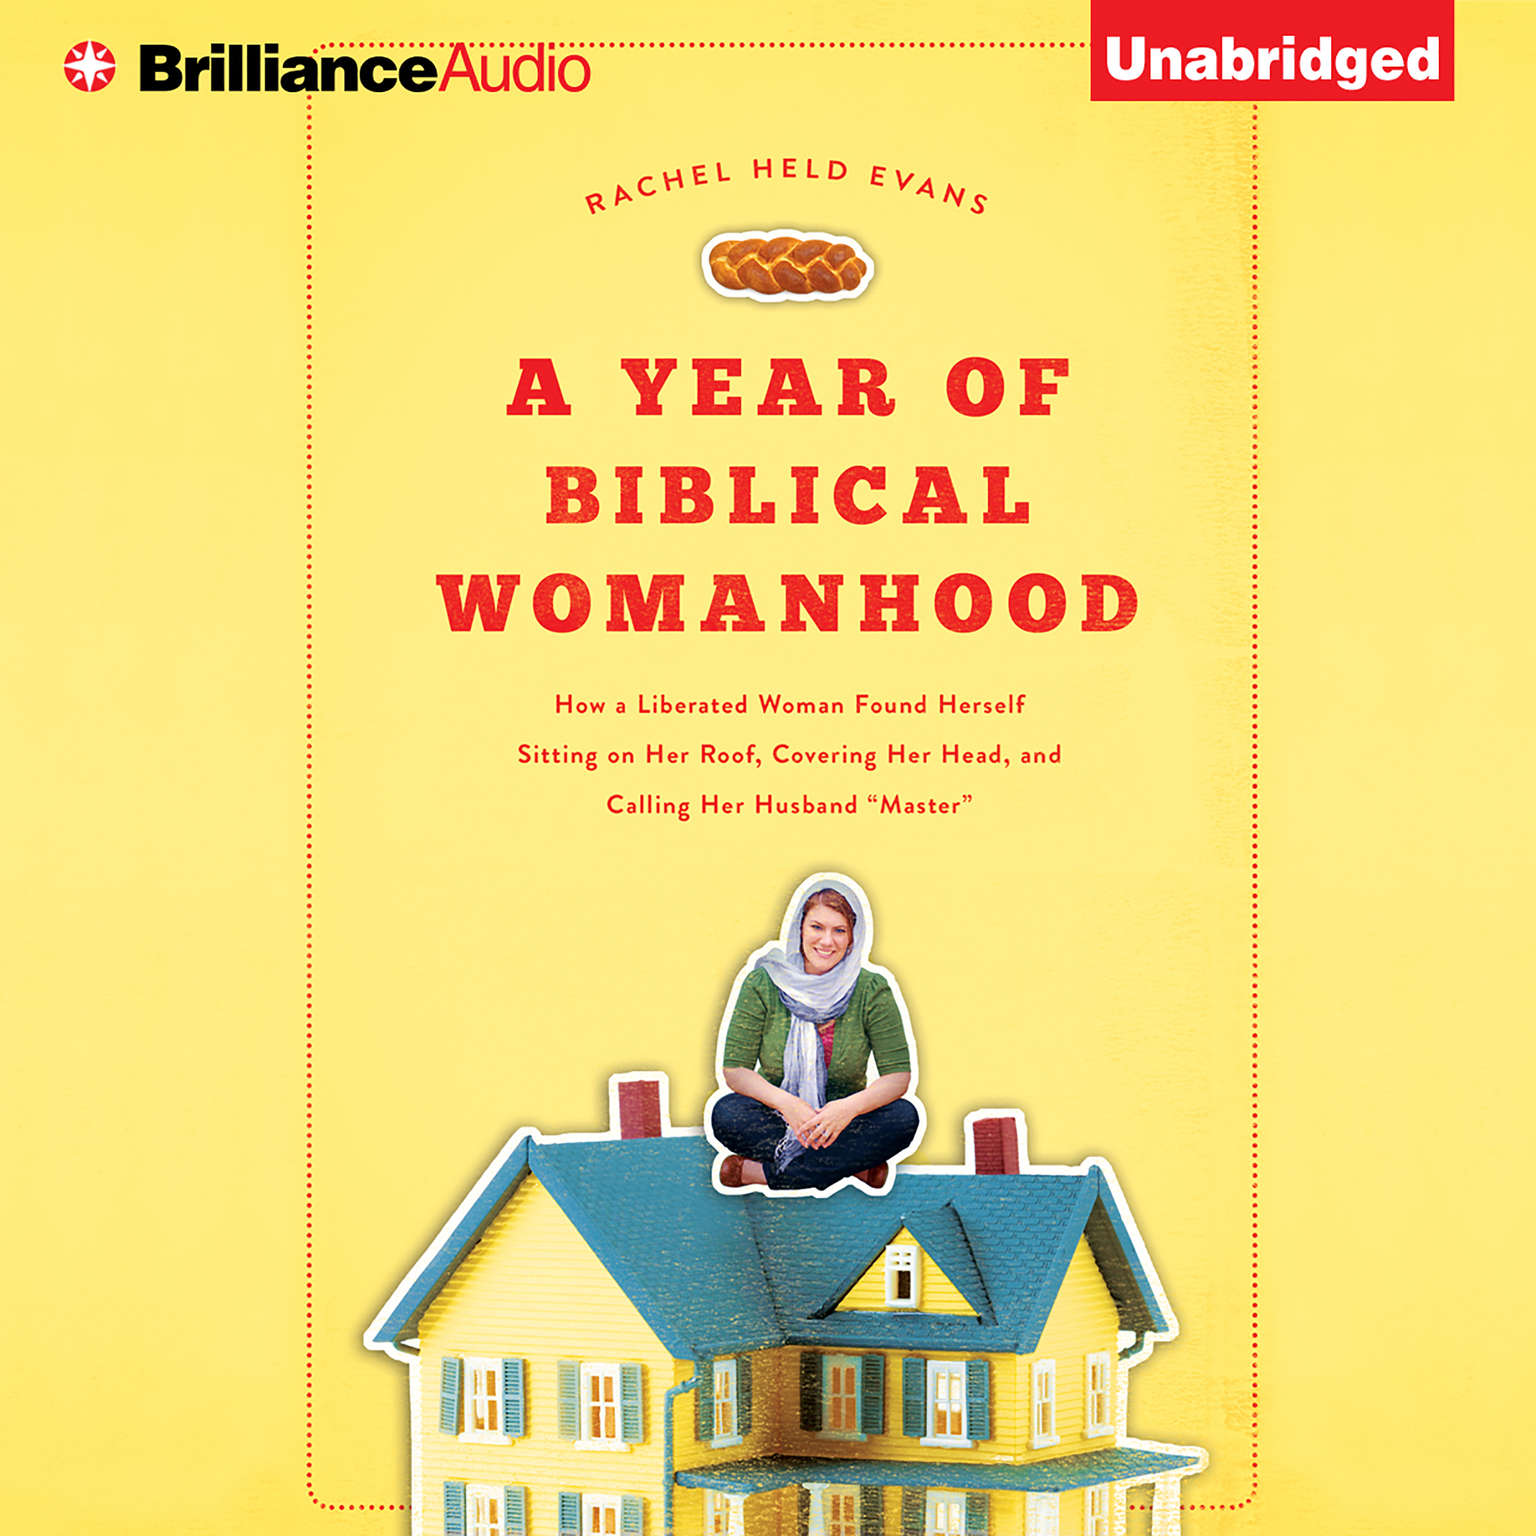 Printable A Year of Biblical Womanhood: How a Liberated Woman Found Herself Sitting on Her Roof, Covering Her Head, and Calling Her Husband